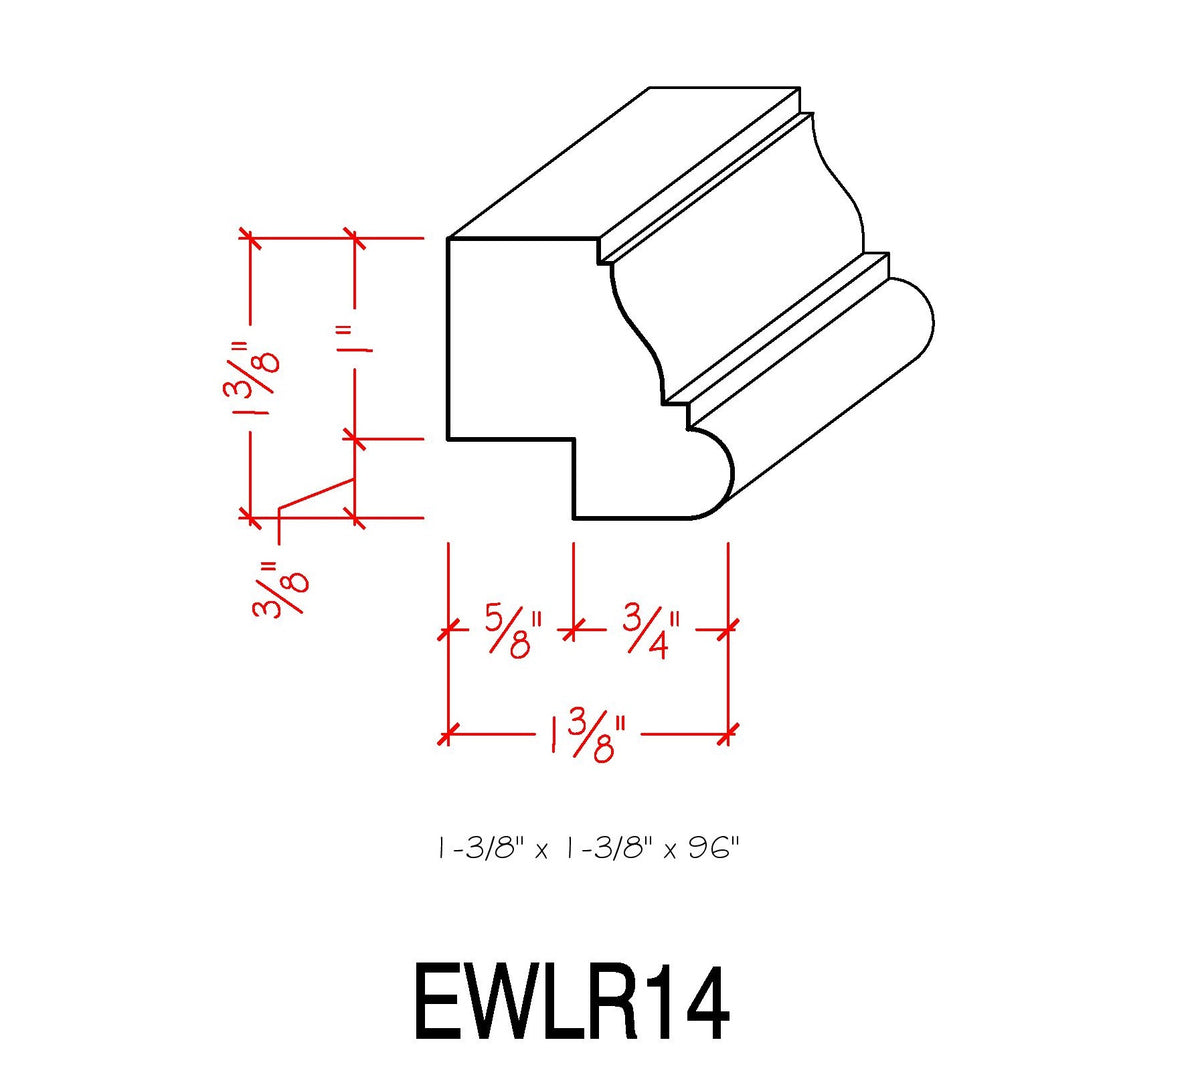 Light Rail EWLR14 Maple